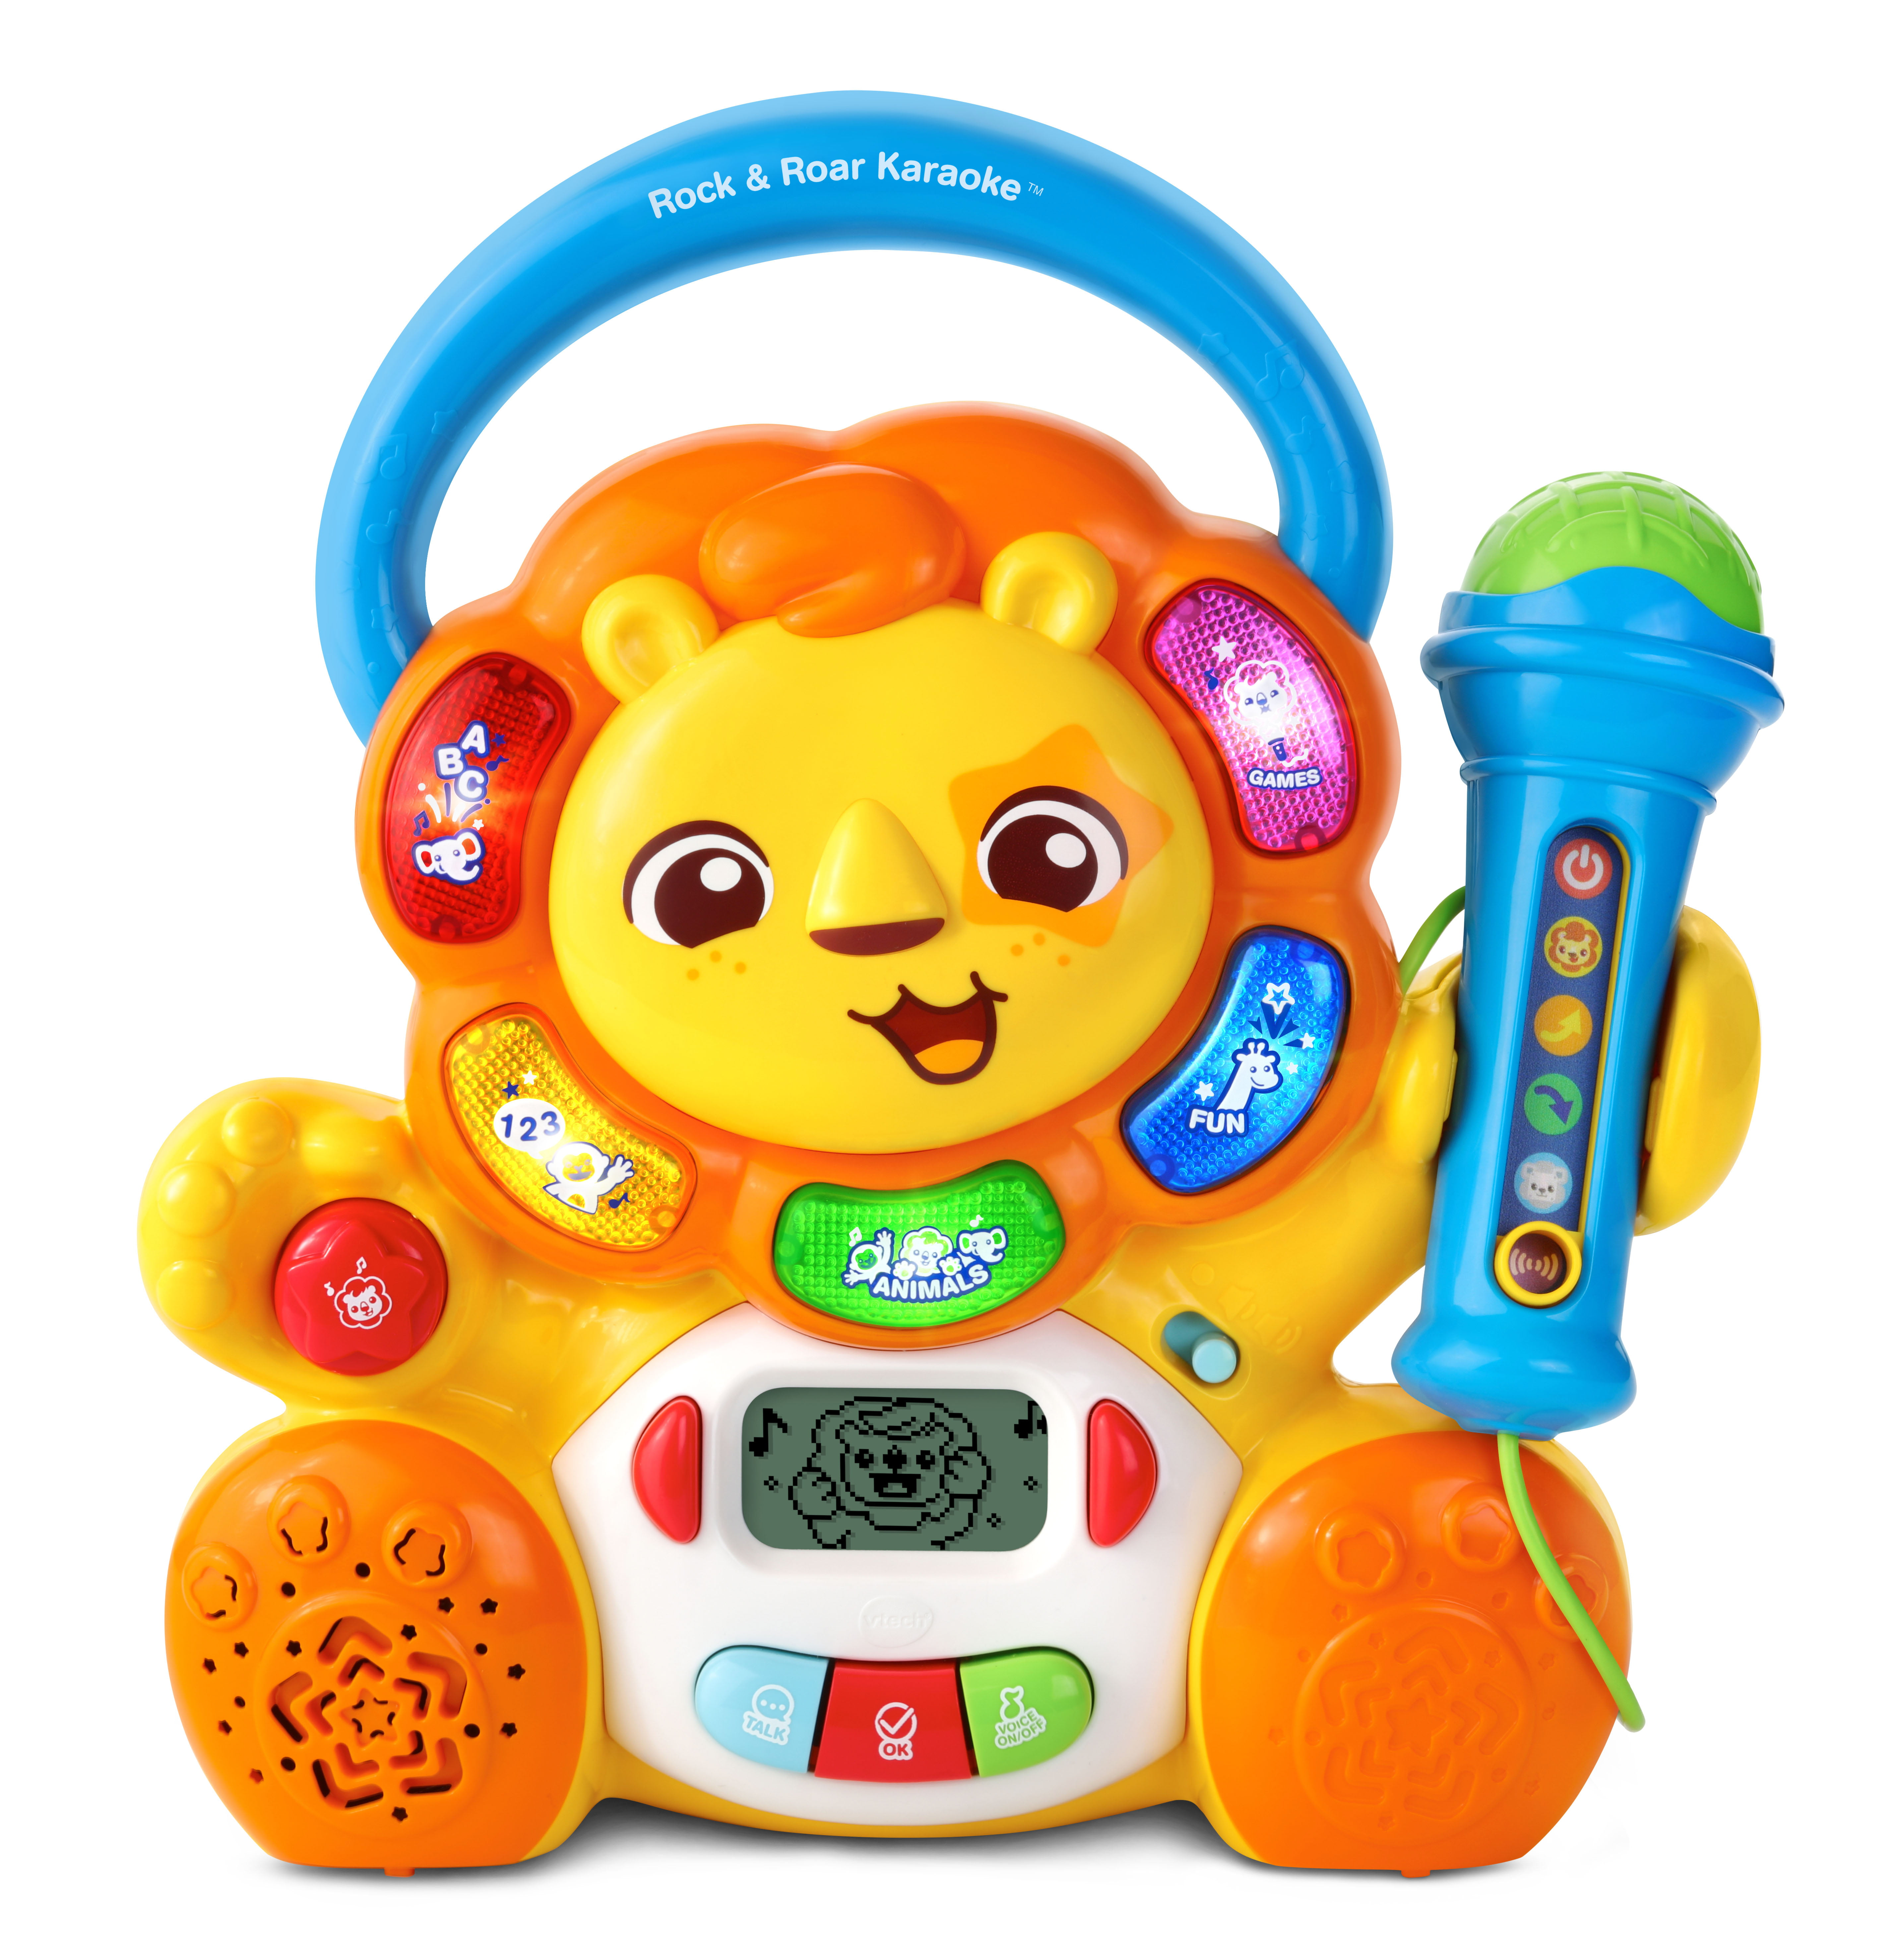 Disney Toy Battery-free Echo Microphone Speaking Sing Pretended Play Party Toy